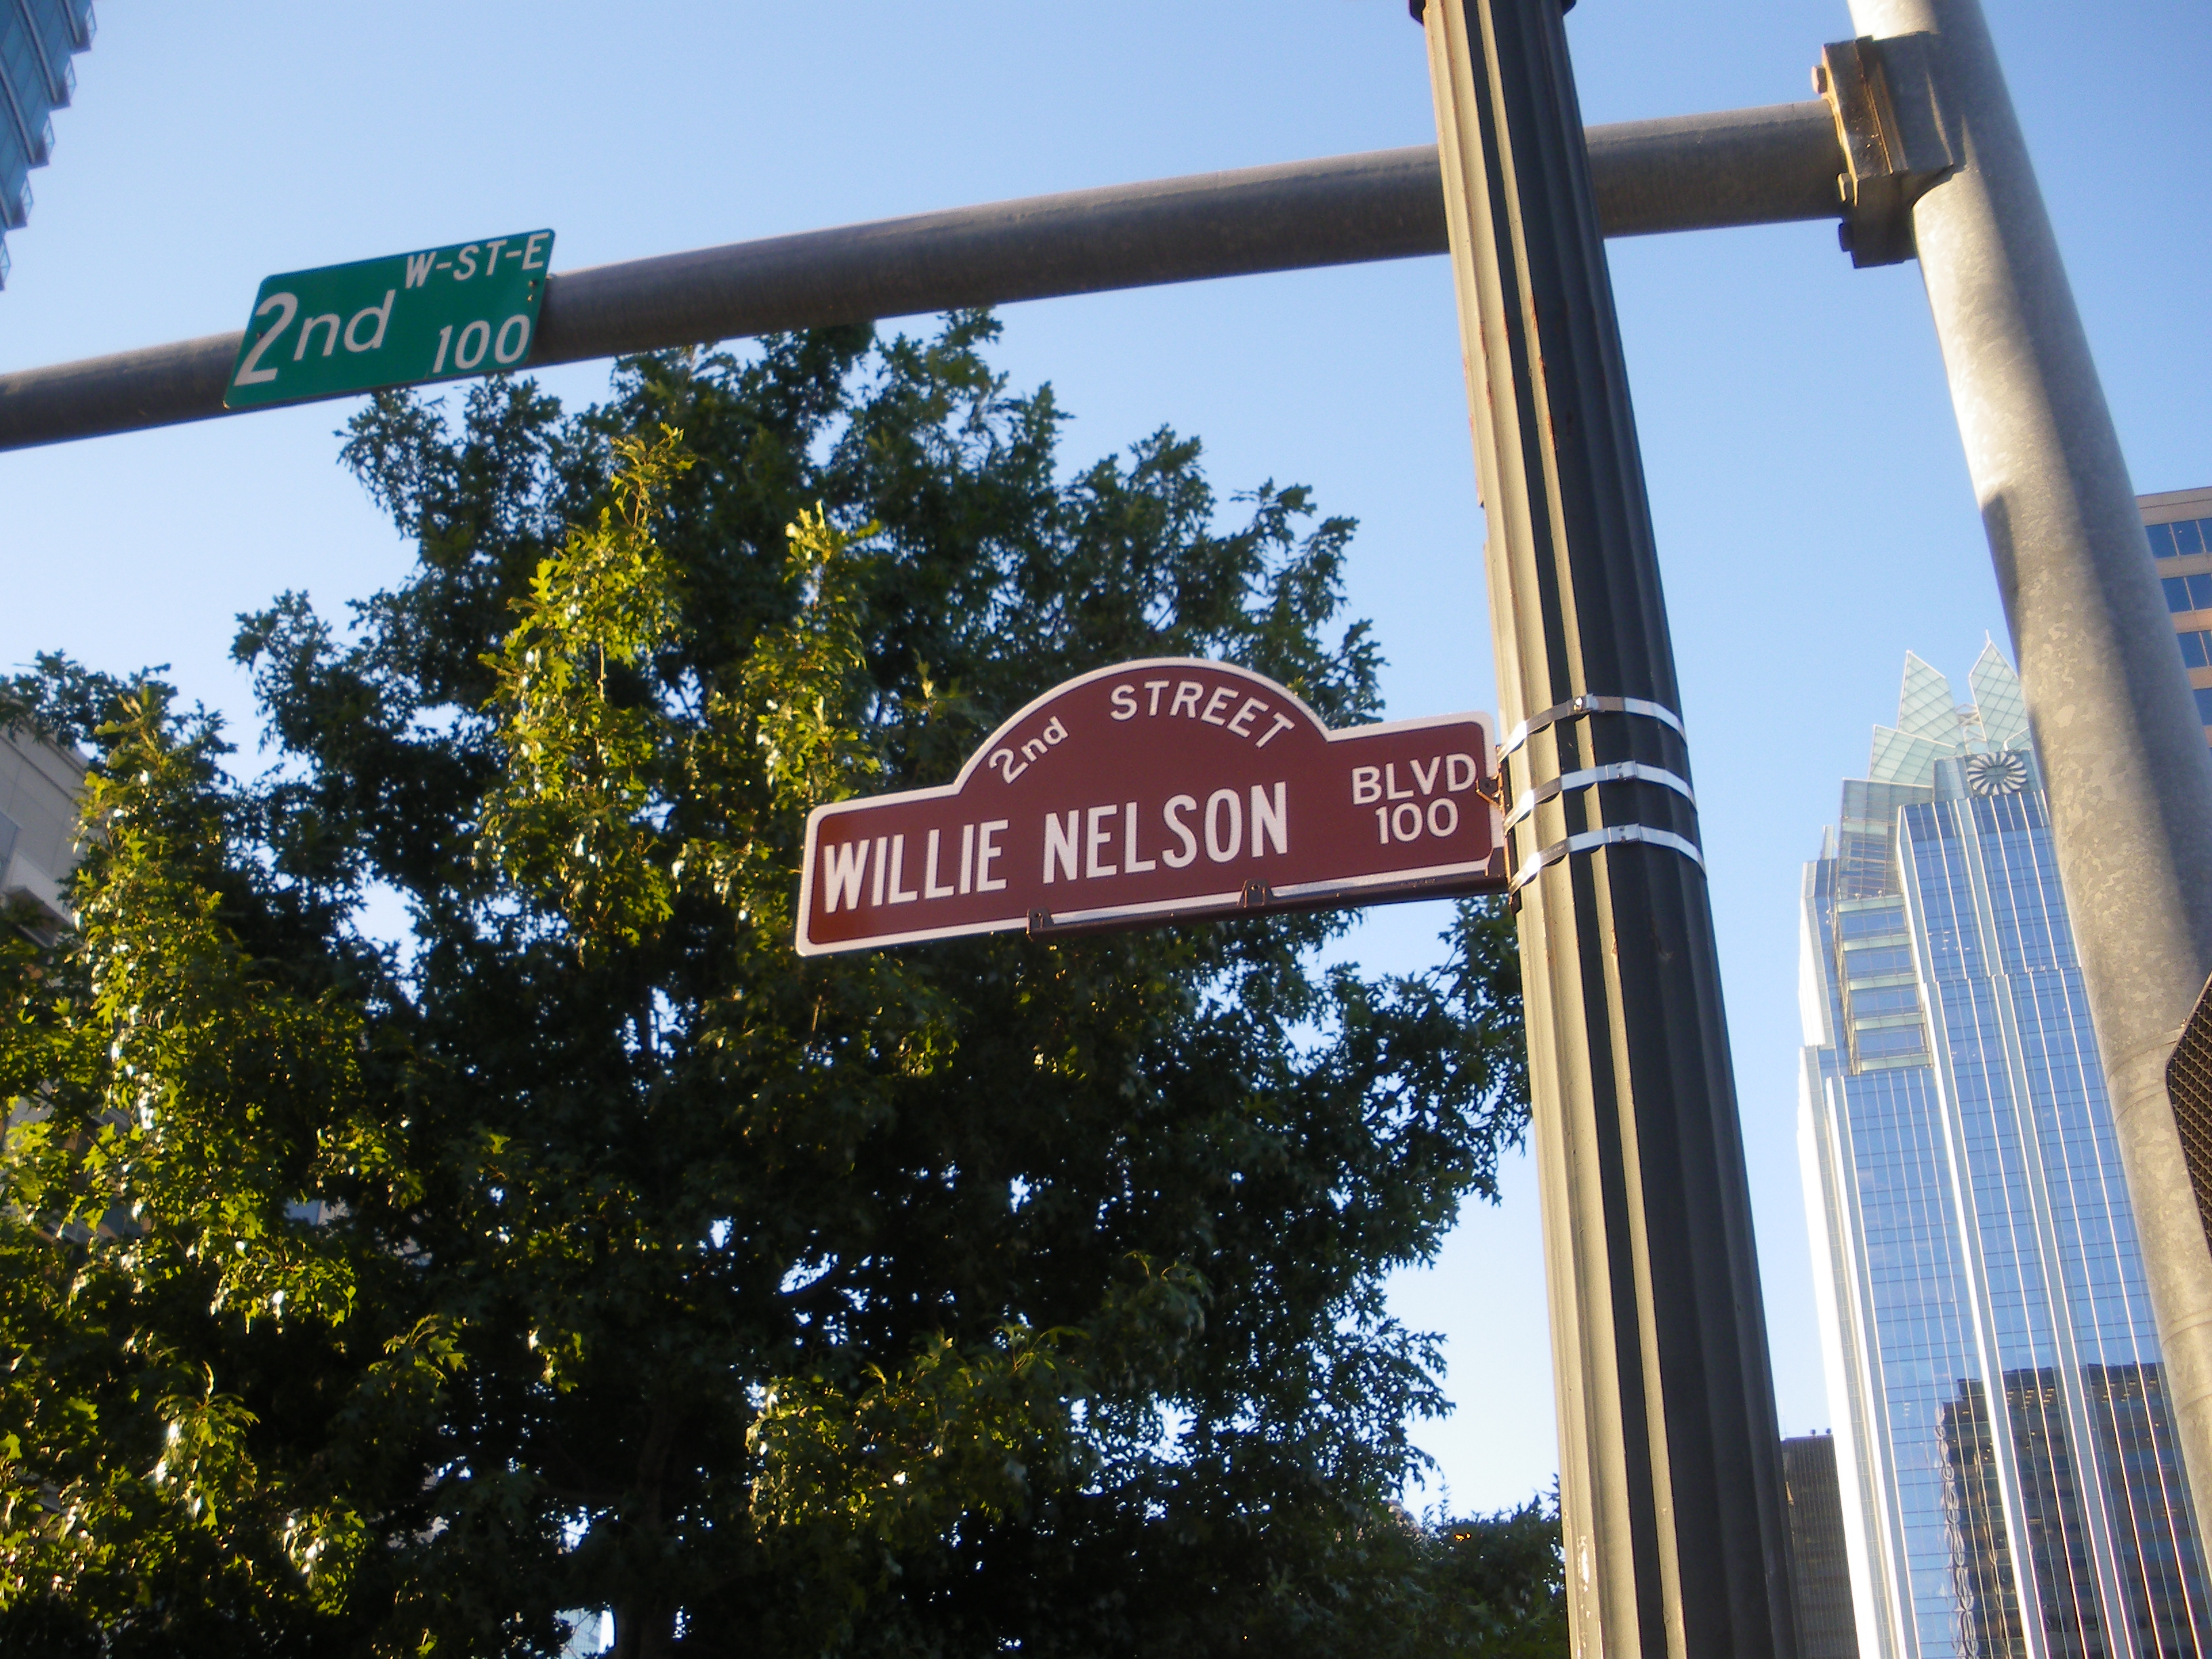 Willie Nelson Blvd, Austin, Texas - IMGP2228 photo by Ed Darrell (please attribute)